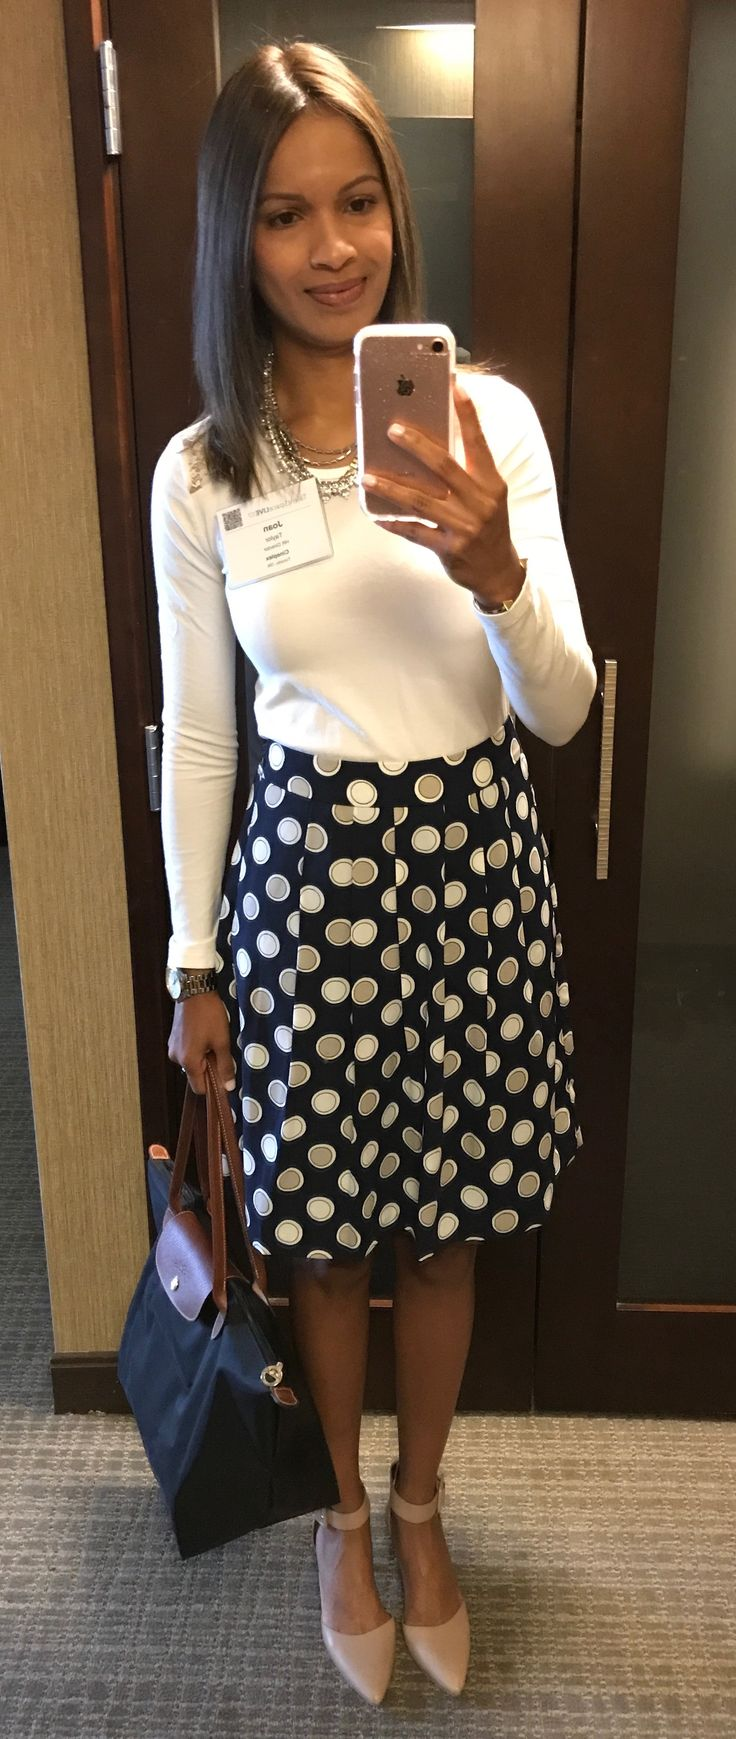 ignore the conference name badge on my outfit and pay attention to the super cute #samedelman shoes and #bananarepublic skirt!